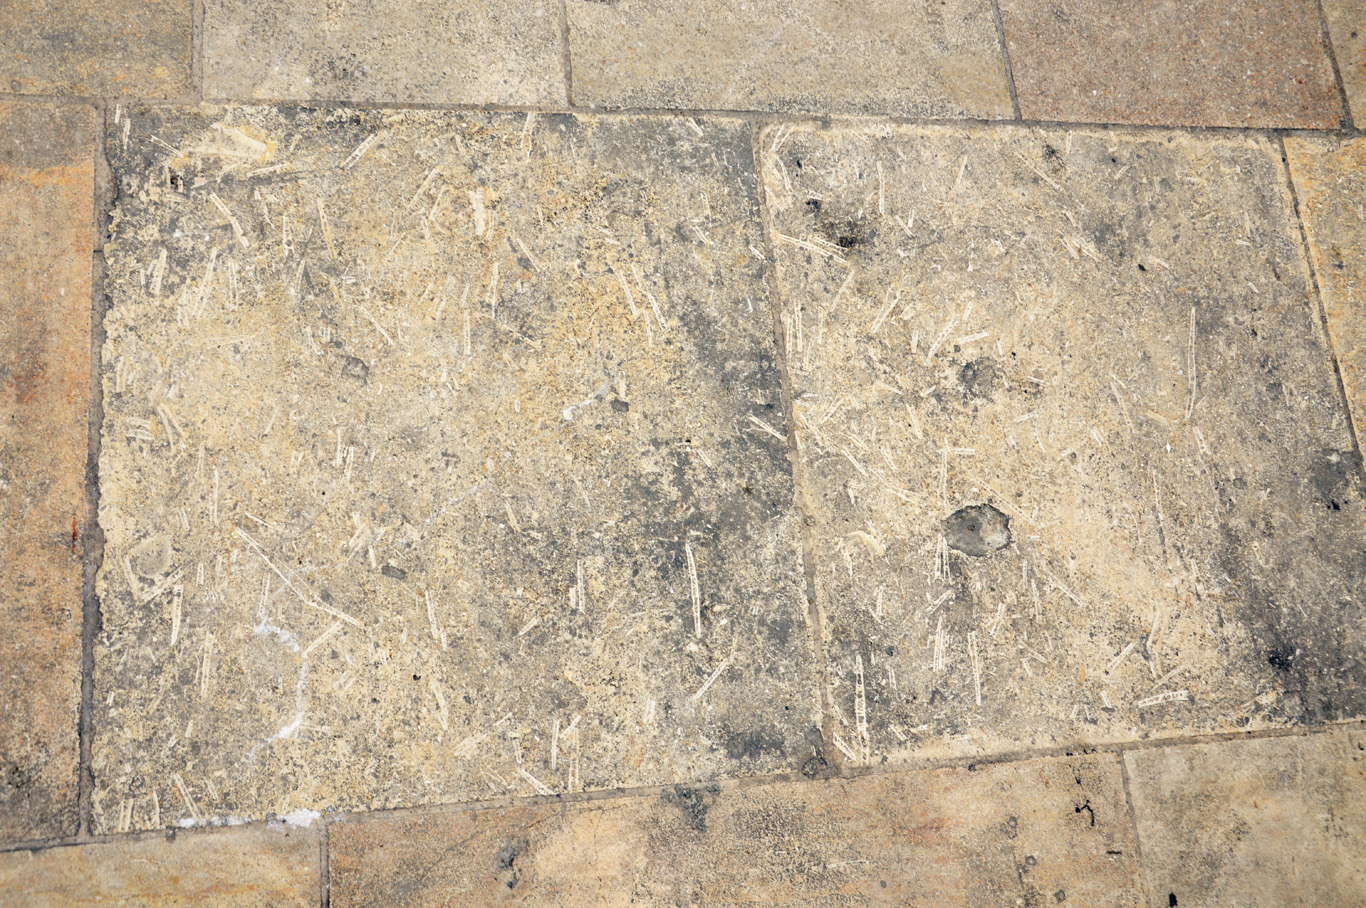 Fossils in the pavement